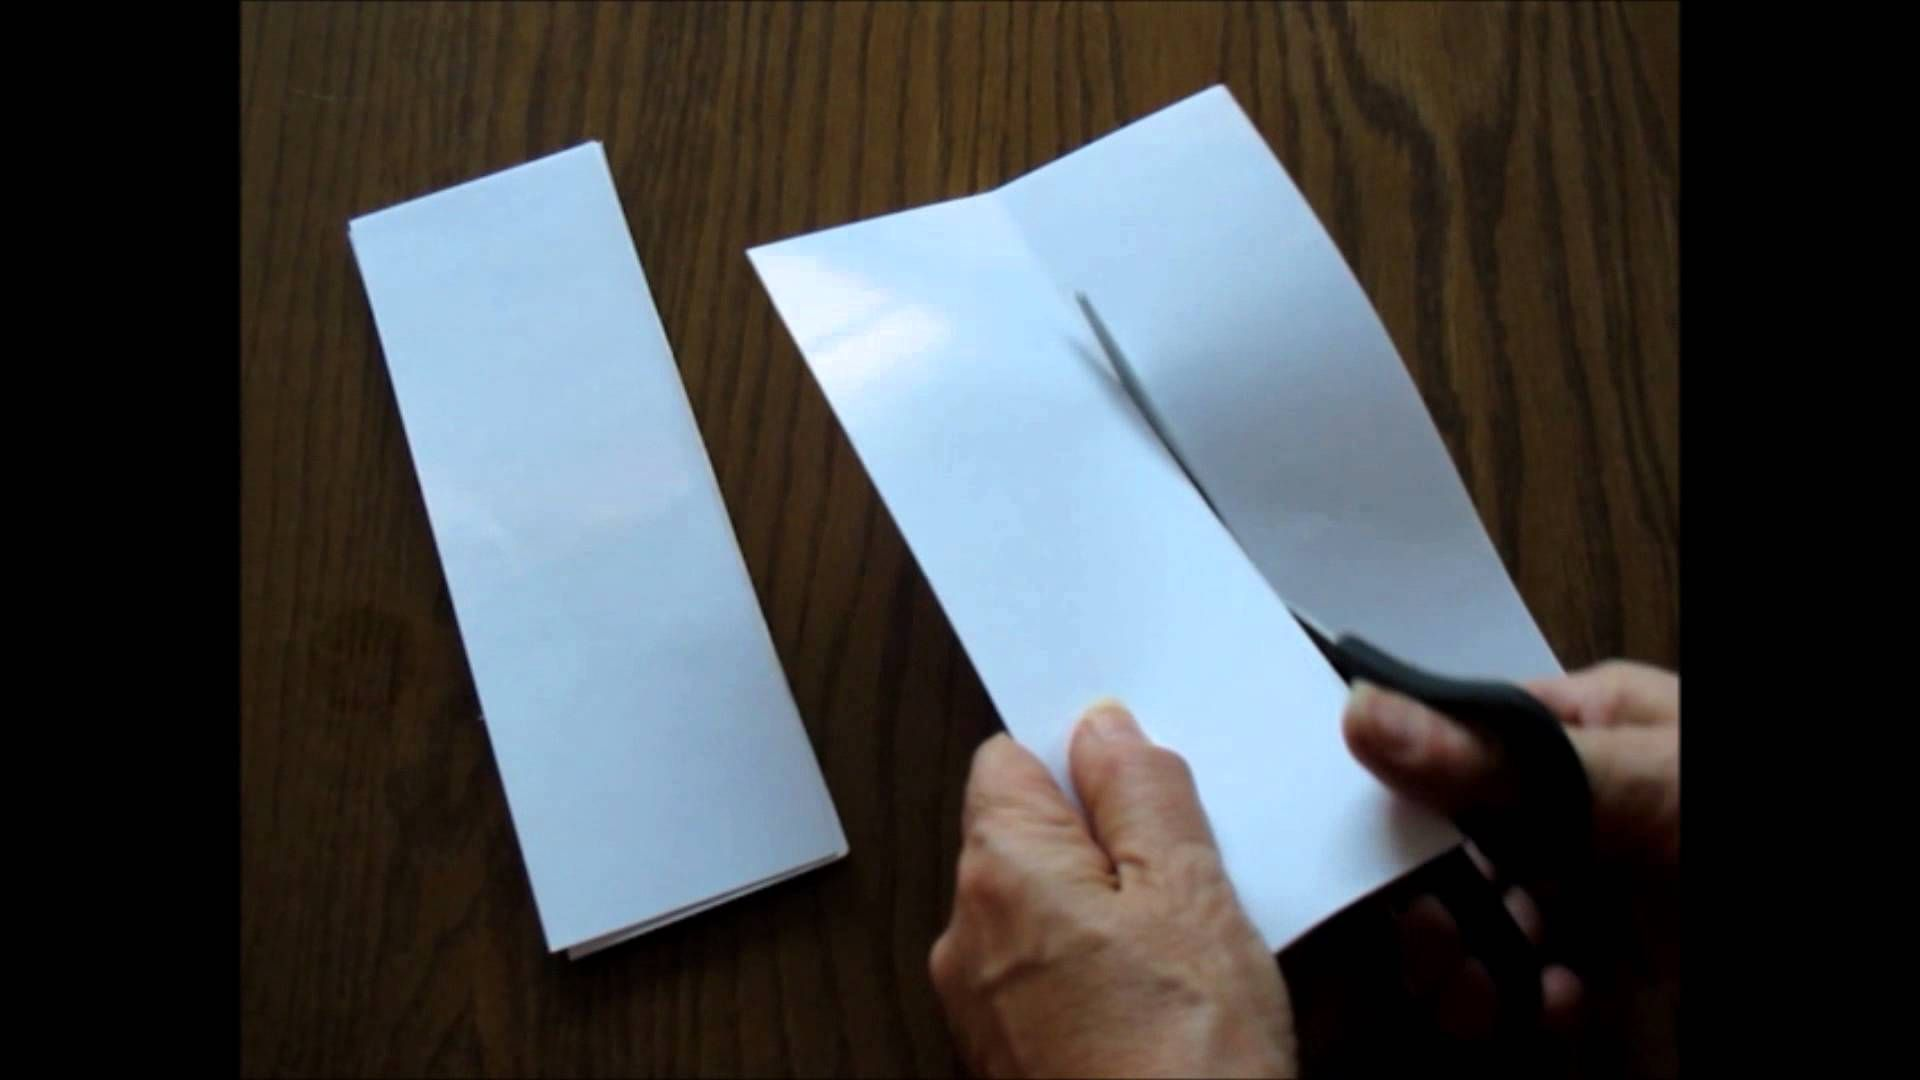 Simple Silent Instructions For A Visual Lesson On How To Make A